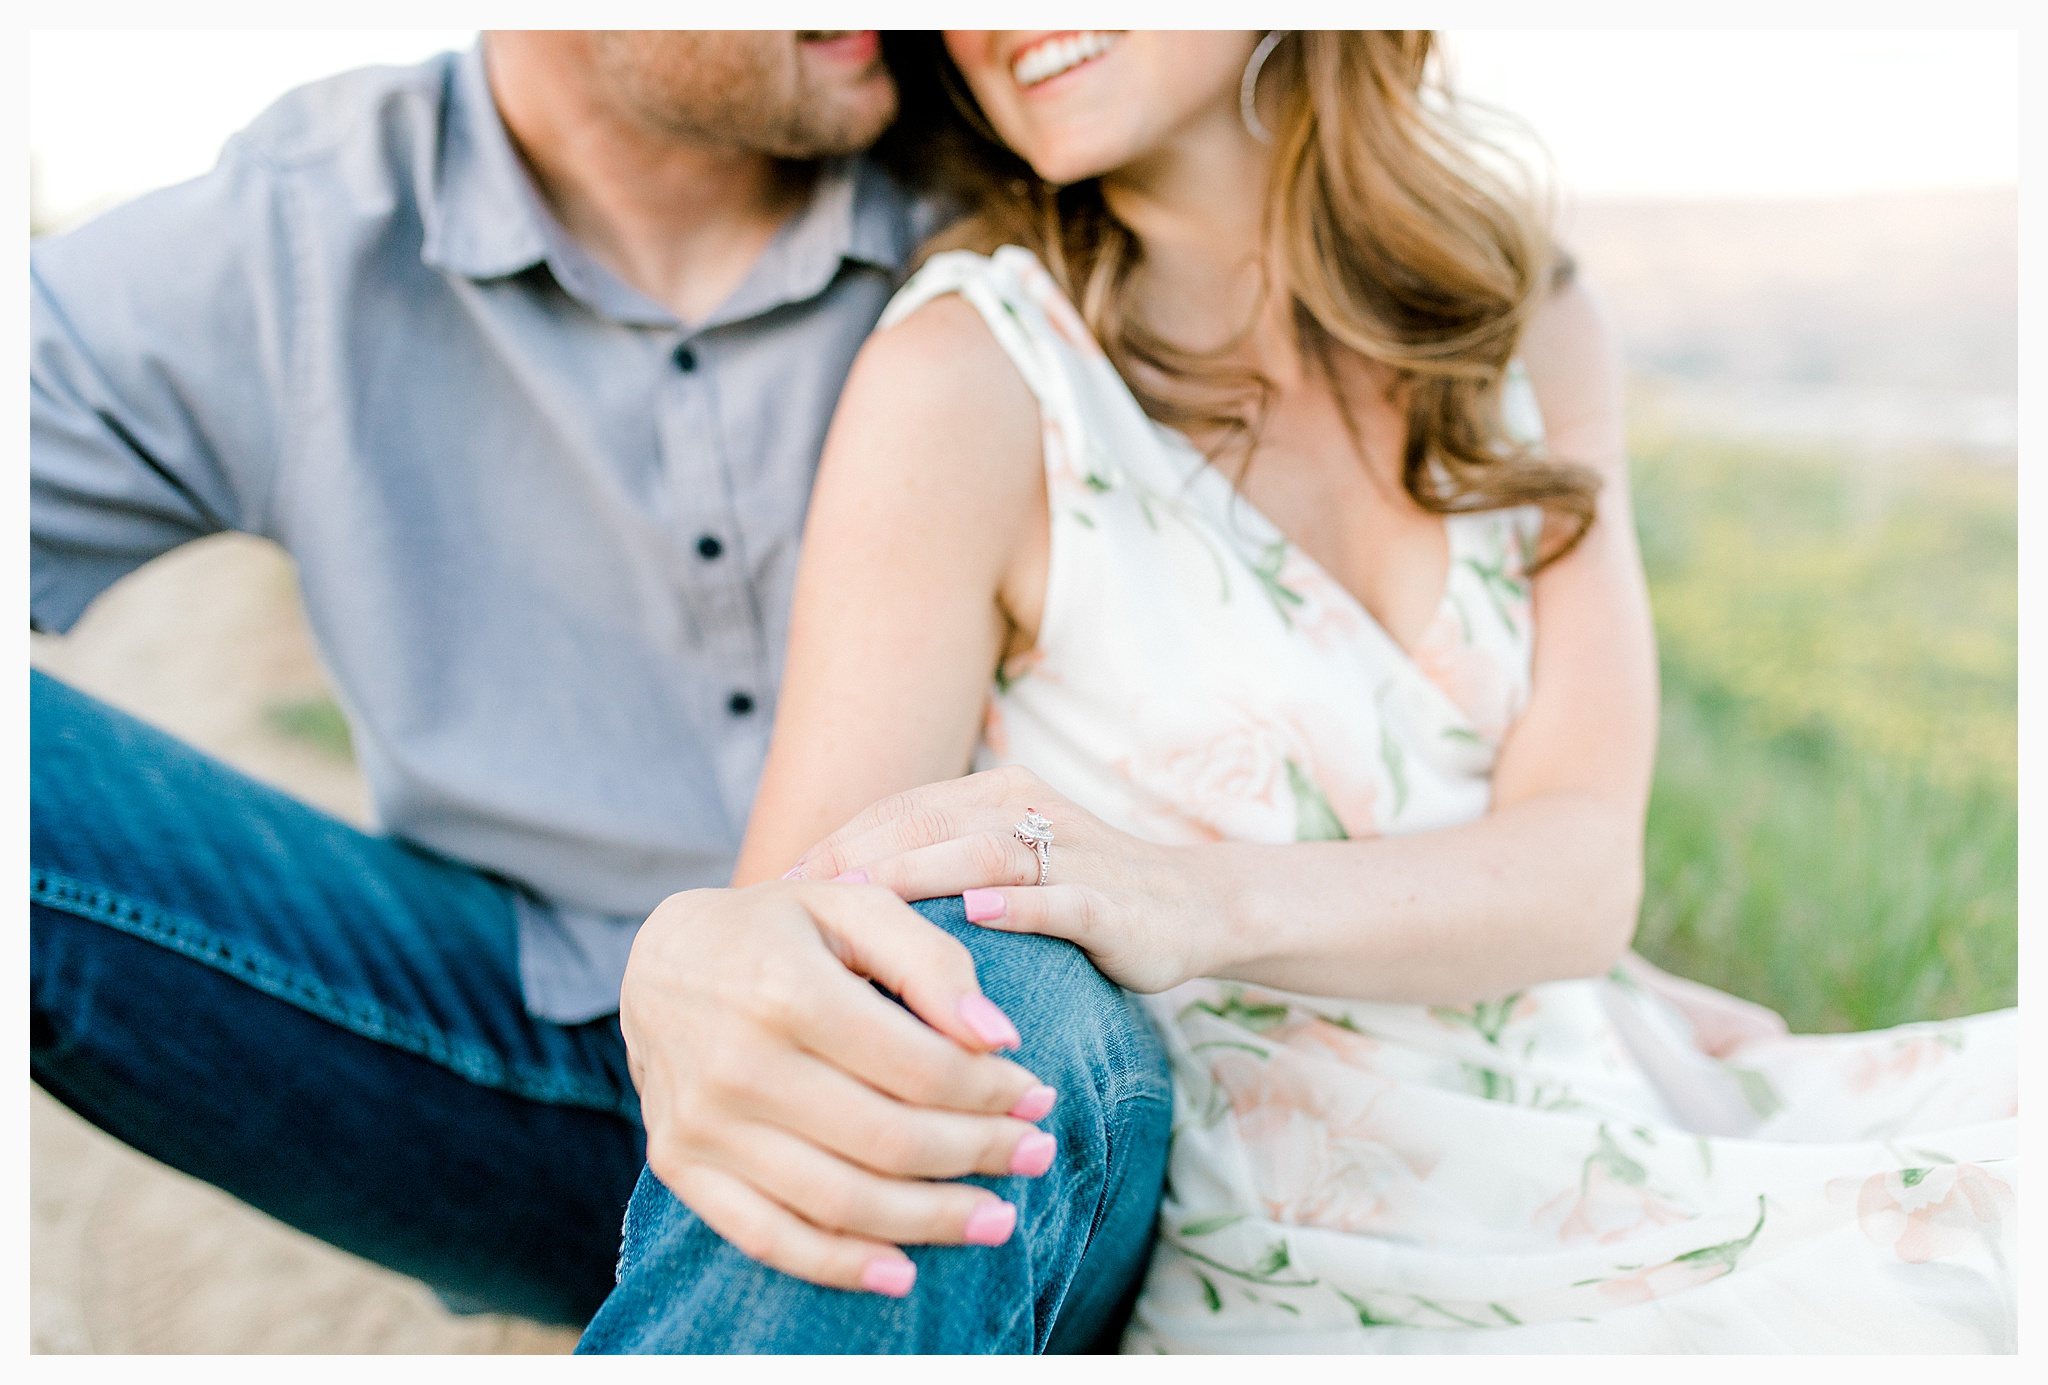 Engagement session amongst the wildflowers in Wenatchee, Washington | Engagement Session Outfit Inspiration for Wedding Photography with Emma Rose Company | Light and Airy PNW Photographer, Seattle Bride_0028.jpg